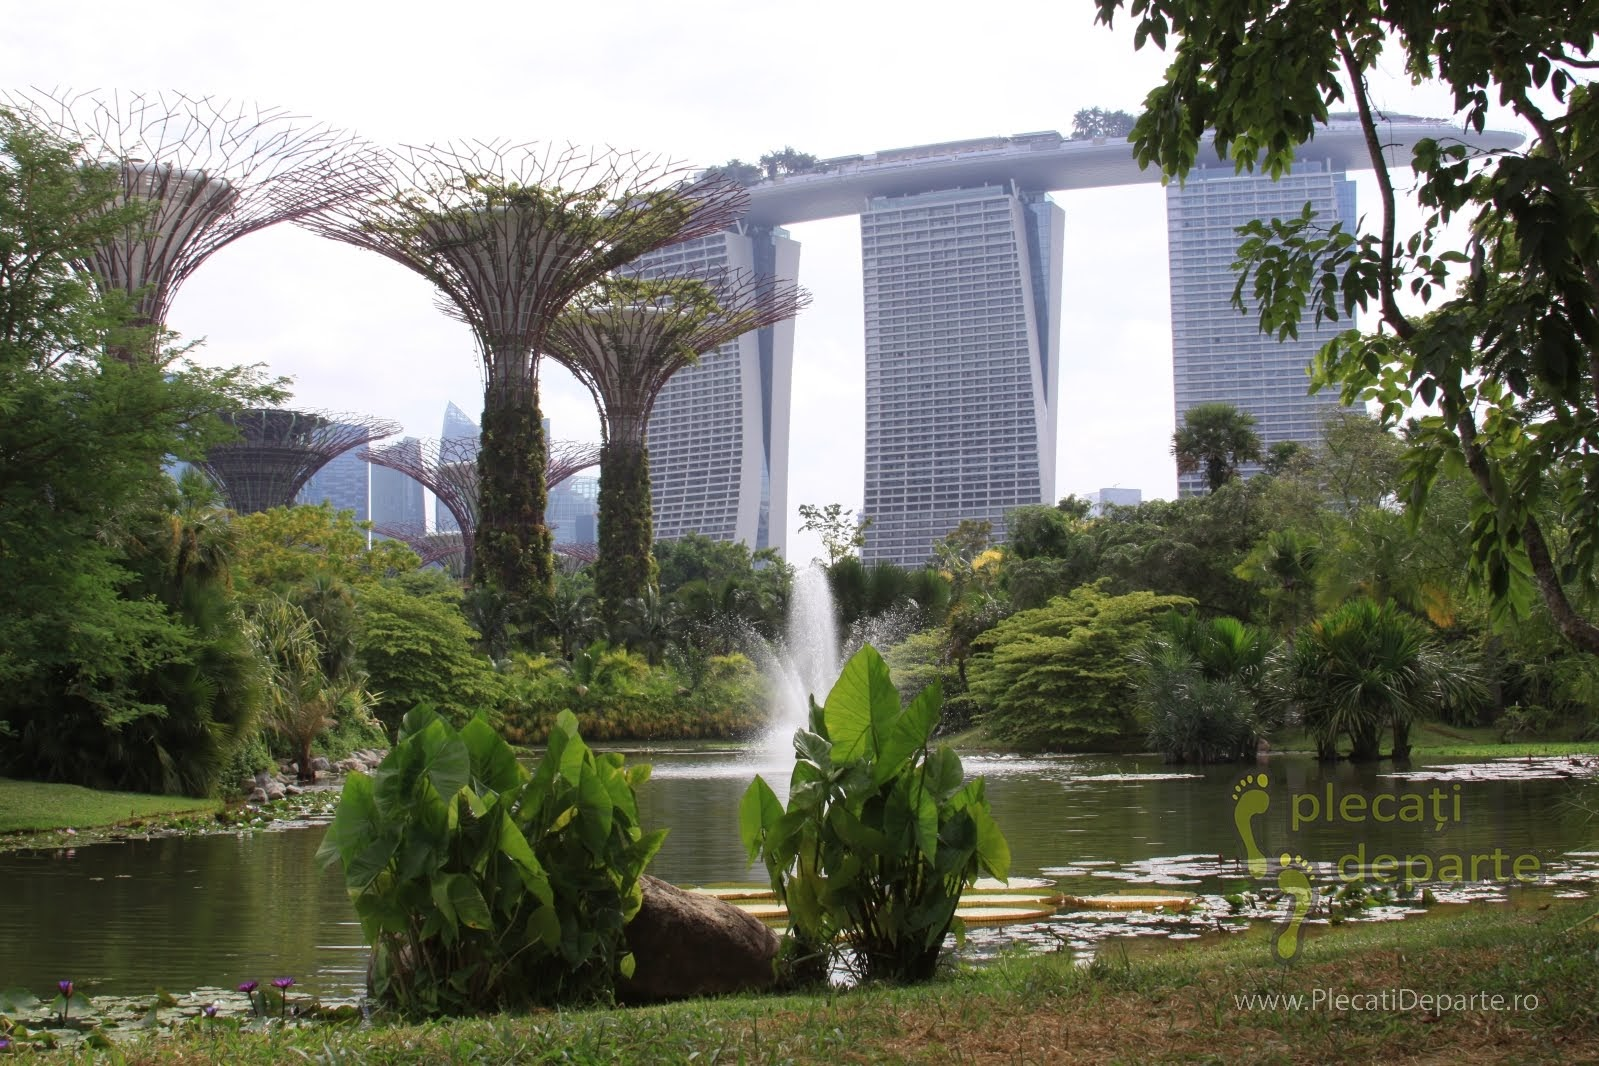 Singapore obiective turistice - Gardens by the Bay Singapore - Supertree Grove si Hotel Marina Bay Sands